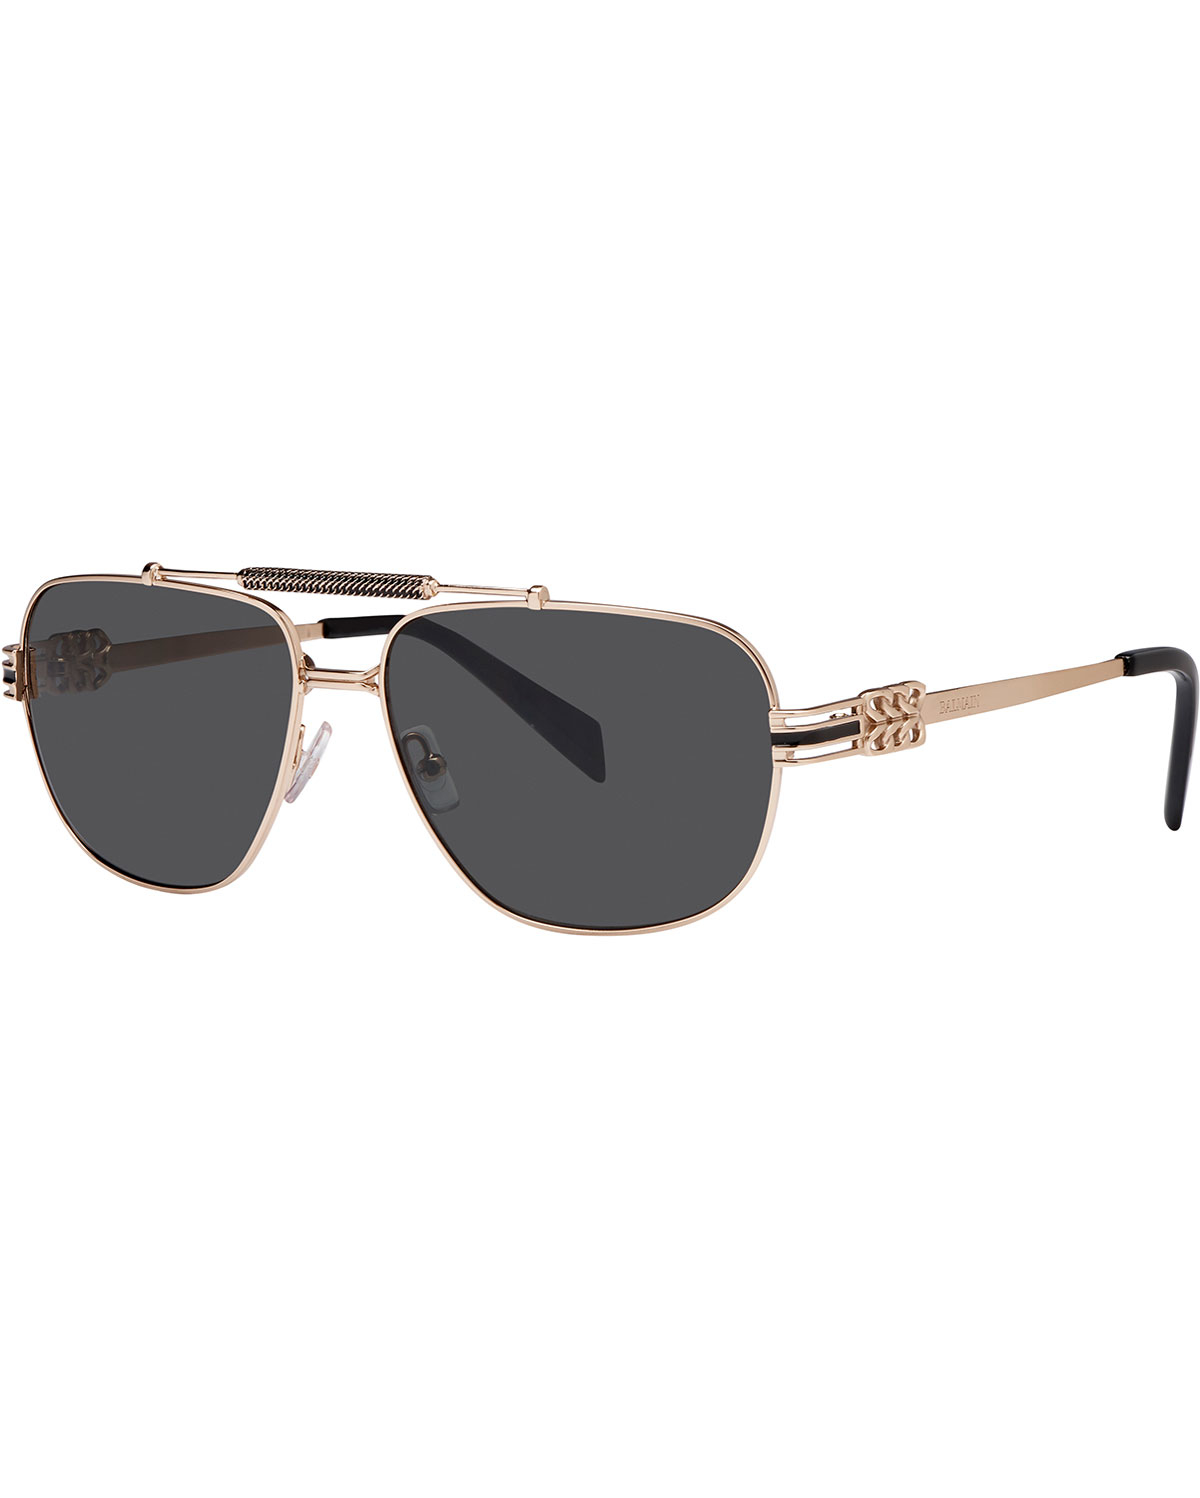 Balmain Aviator Sunglasses  balmain metal chain rim rectangle aviator sunglasses in metallic